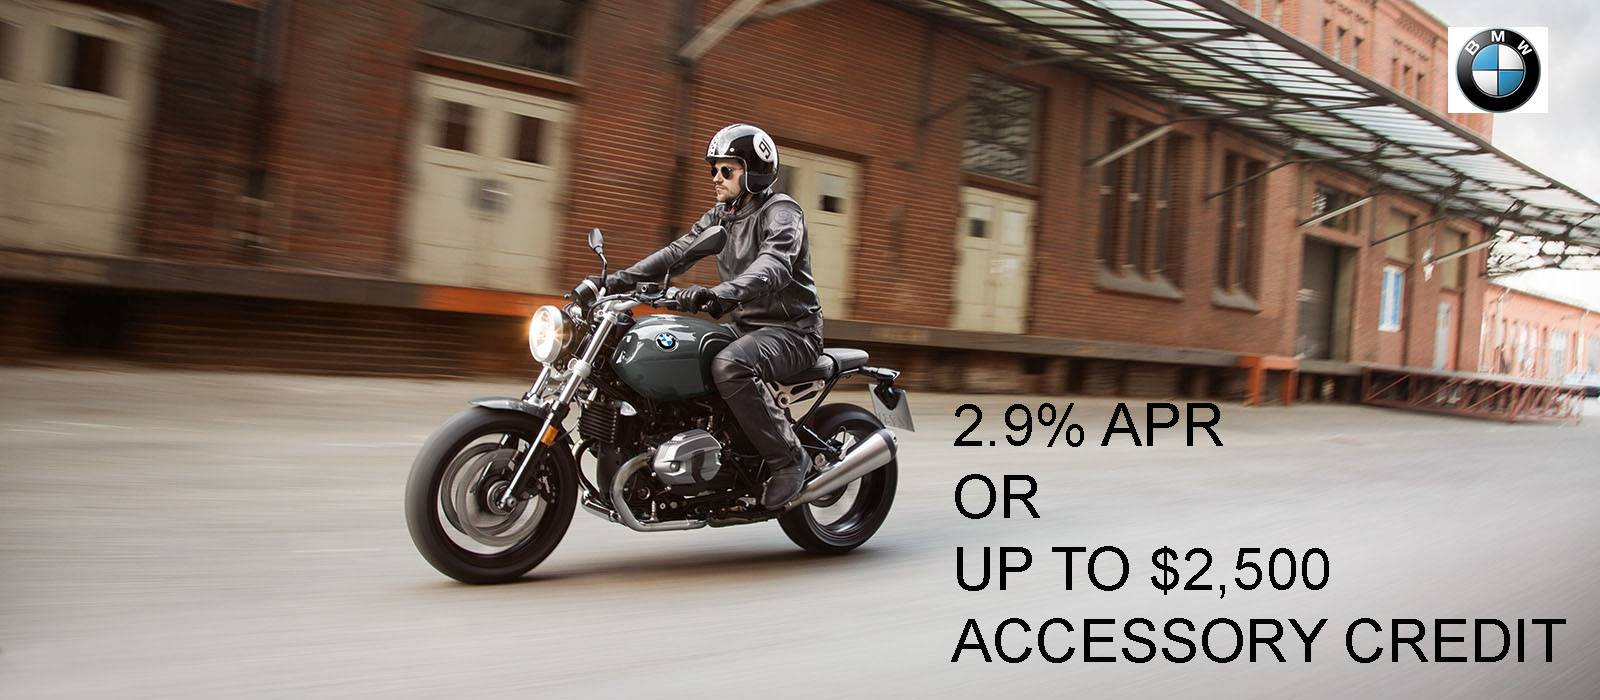 2.9% APR OR UP TO $2,500 ACCESSORY CREDIT